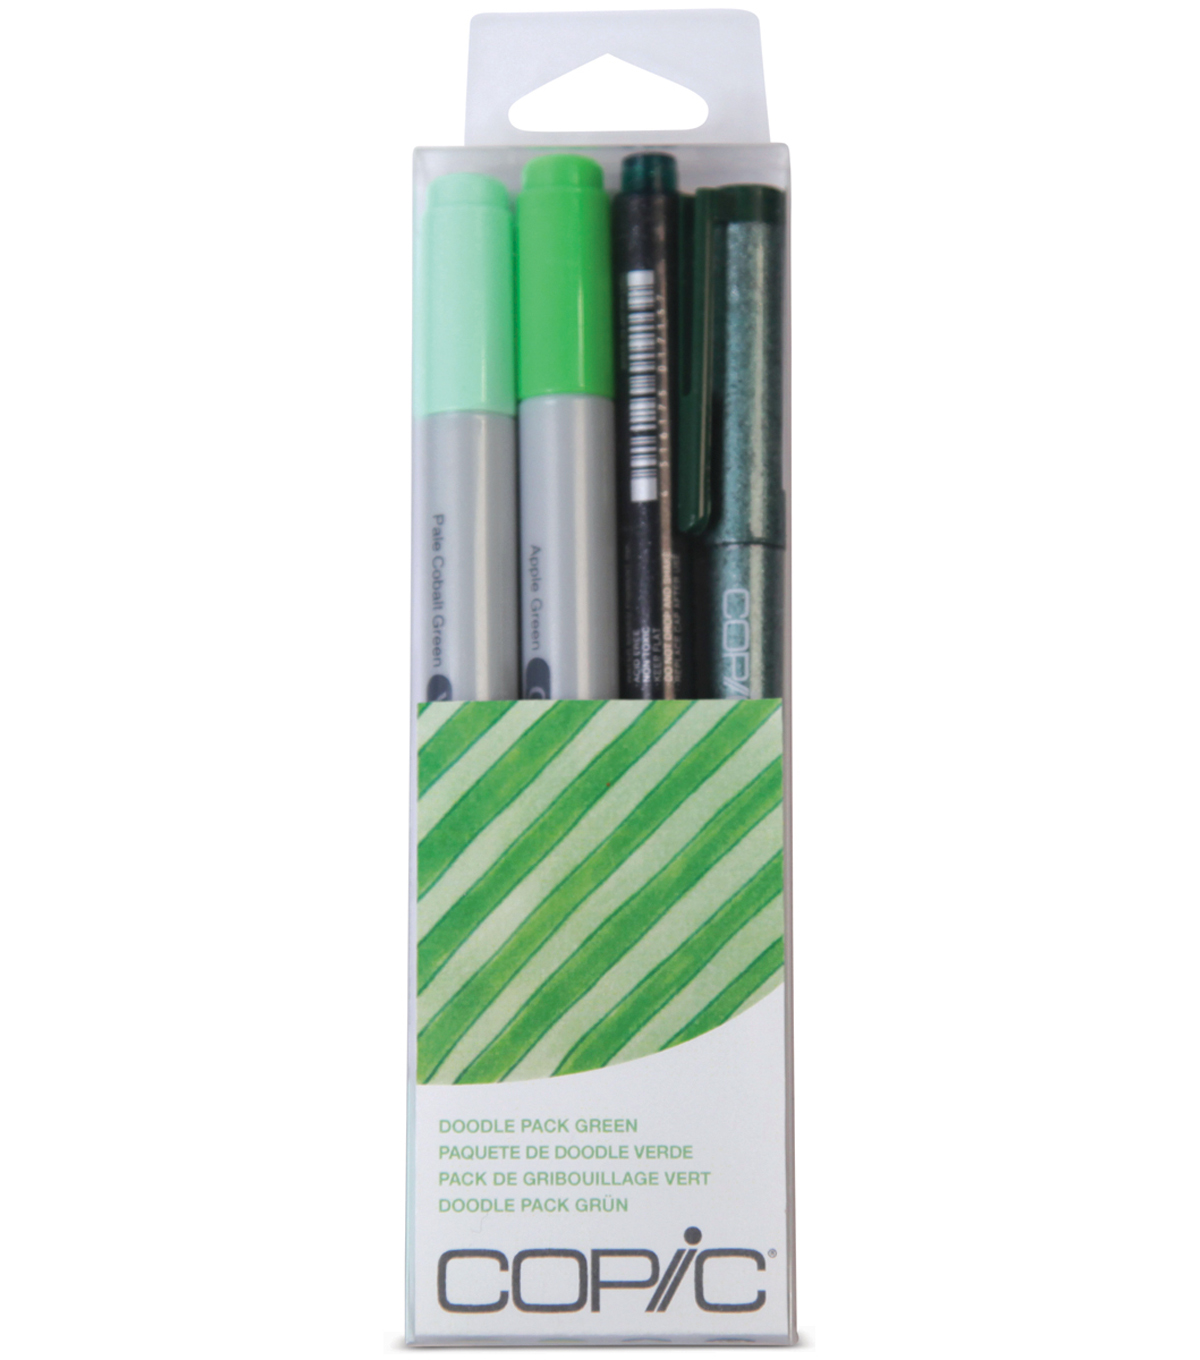 Copic Doodle Pack-Green